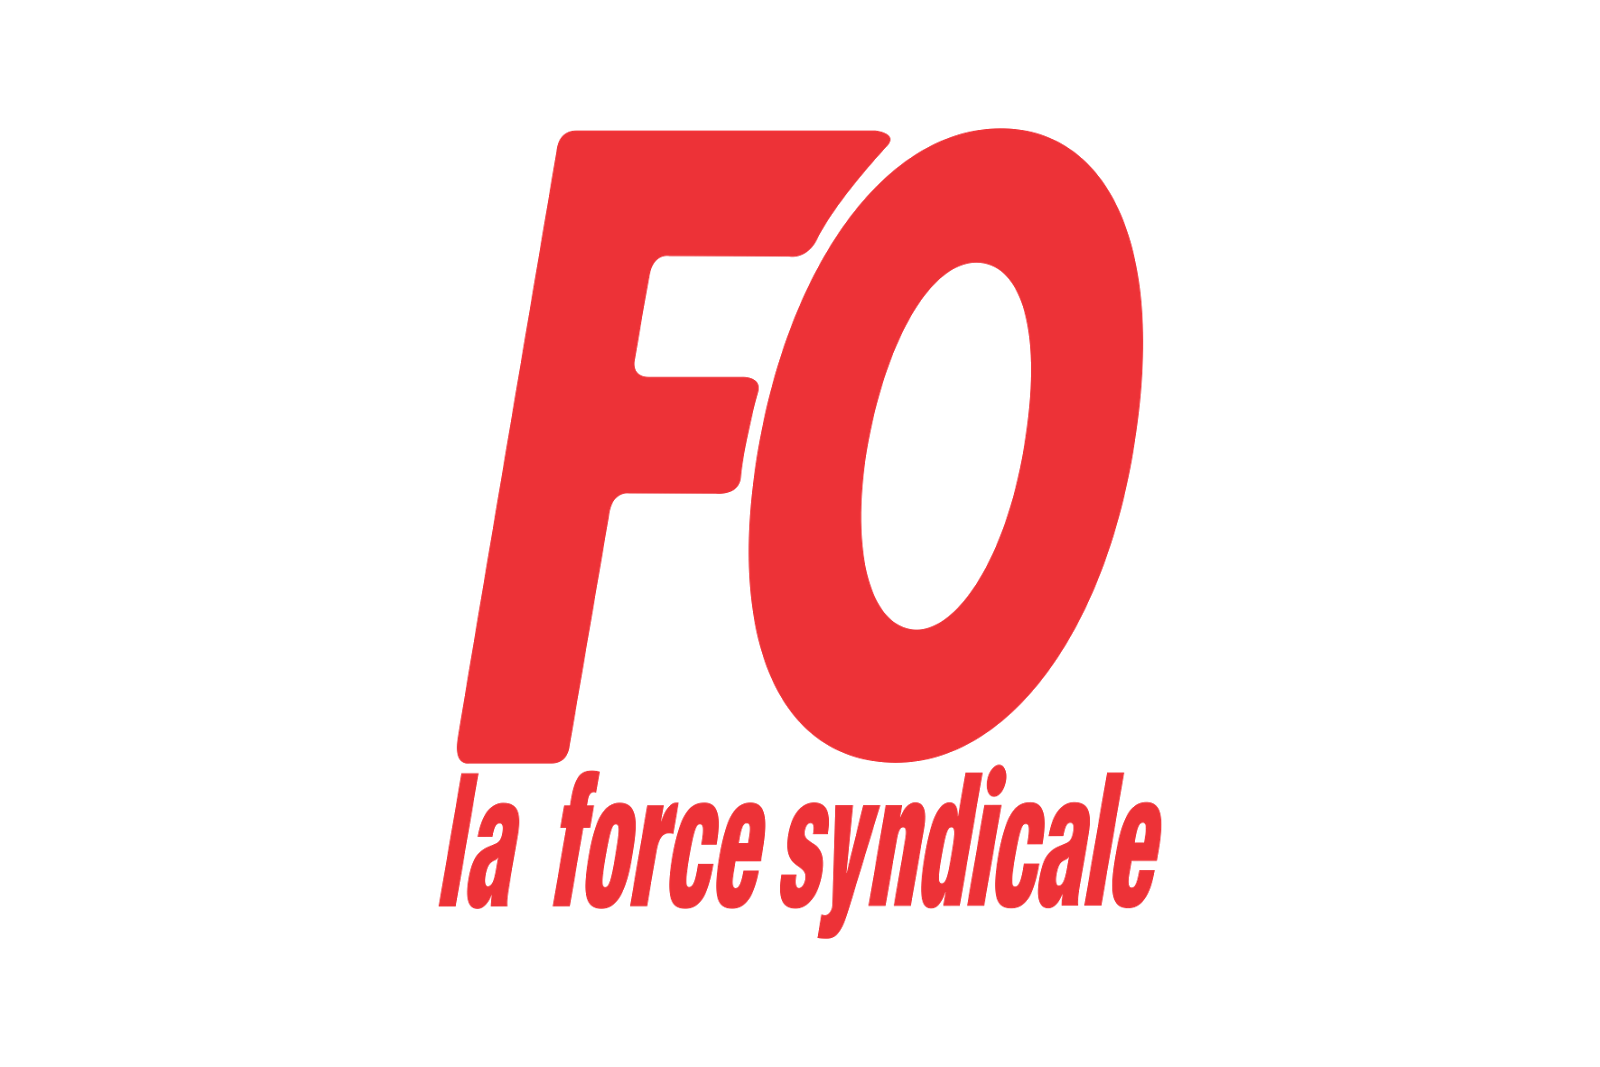 78c652ffaa1 FO La Force Syndicale Logo - logo cdr vector